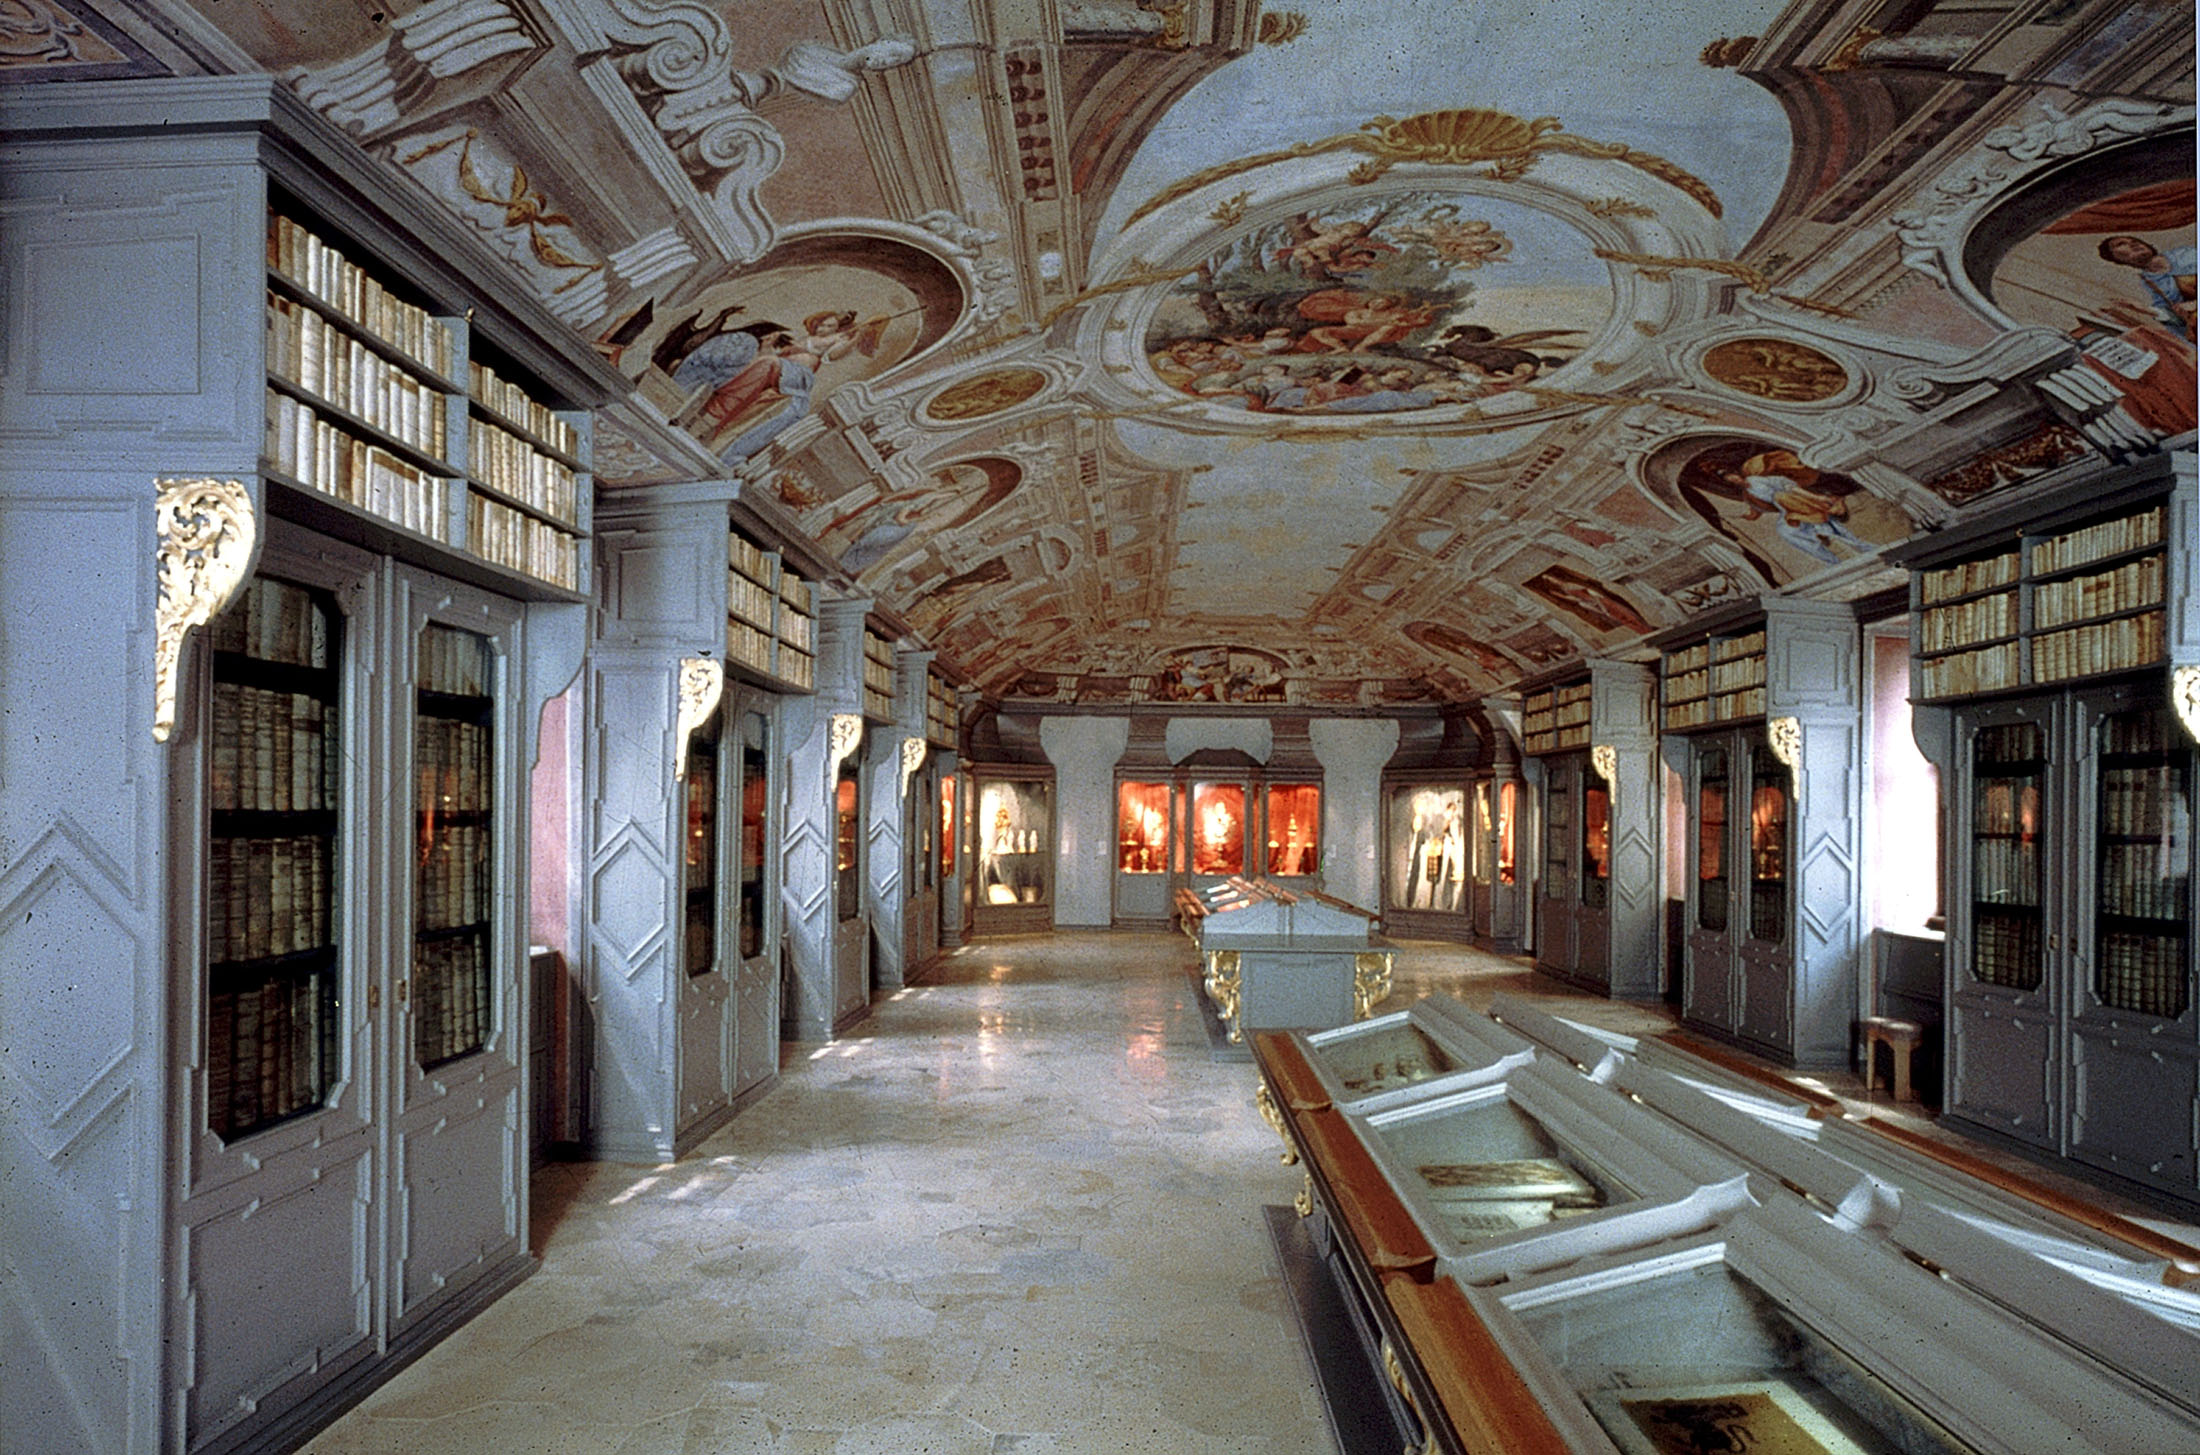 The Museum at the Passau Cathedral is situated in the Residence building and displays masterpieces of art ranging from the Romanesque period up to the present.